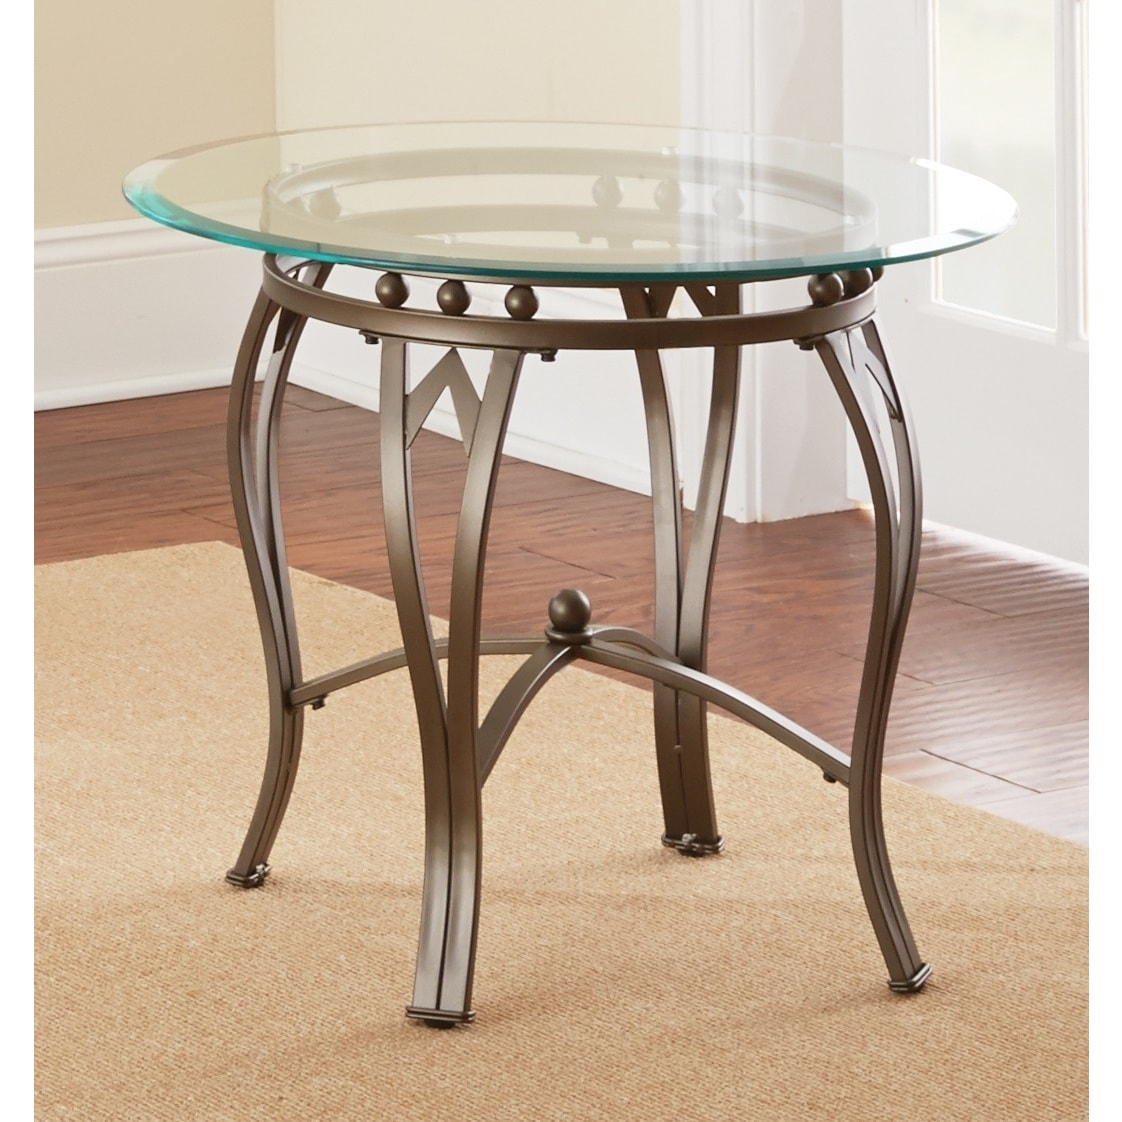 Shop Greyson Living Maison Glass Top Round End Table Free Shipping